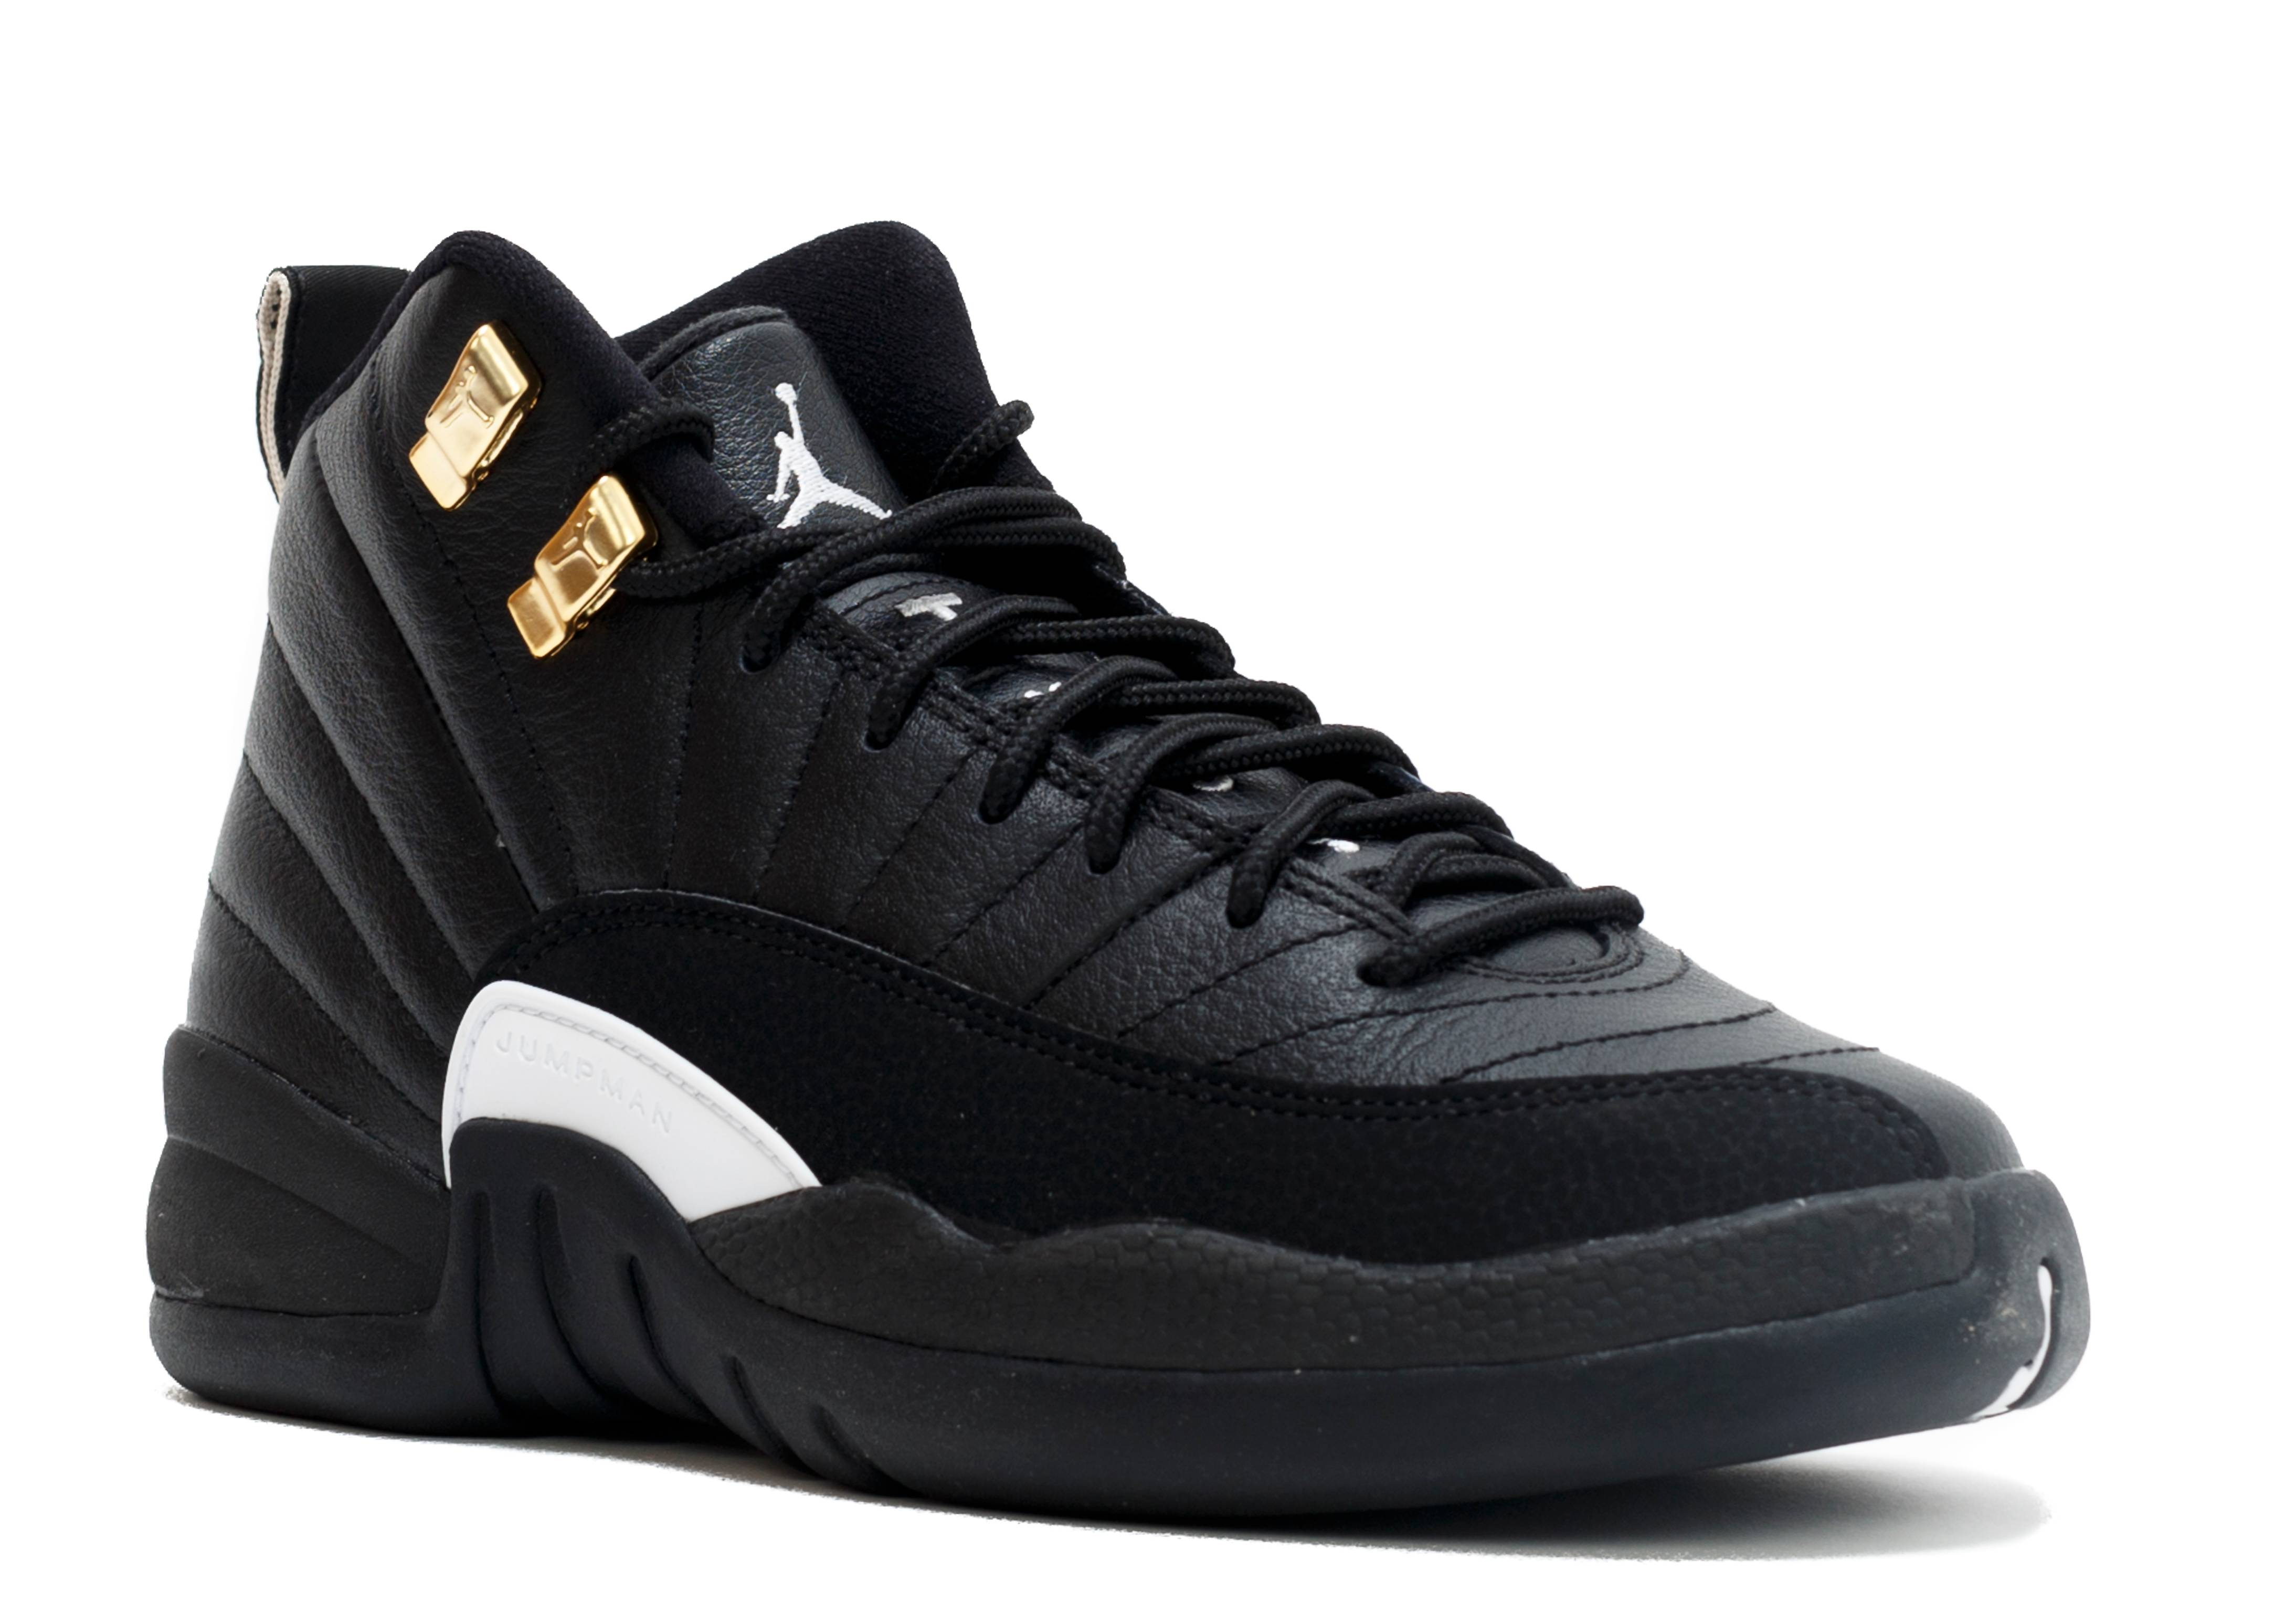 air jordan xii retro the master